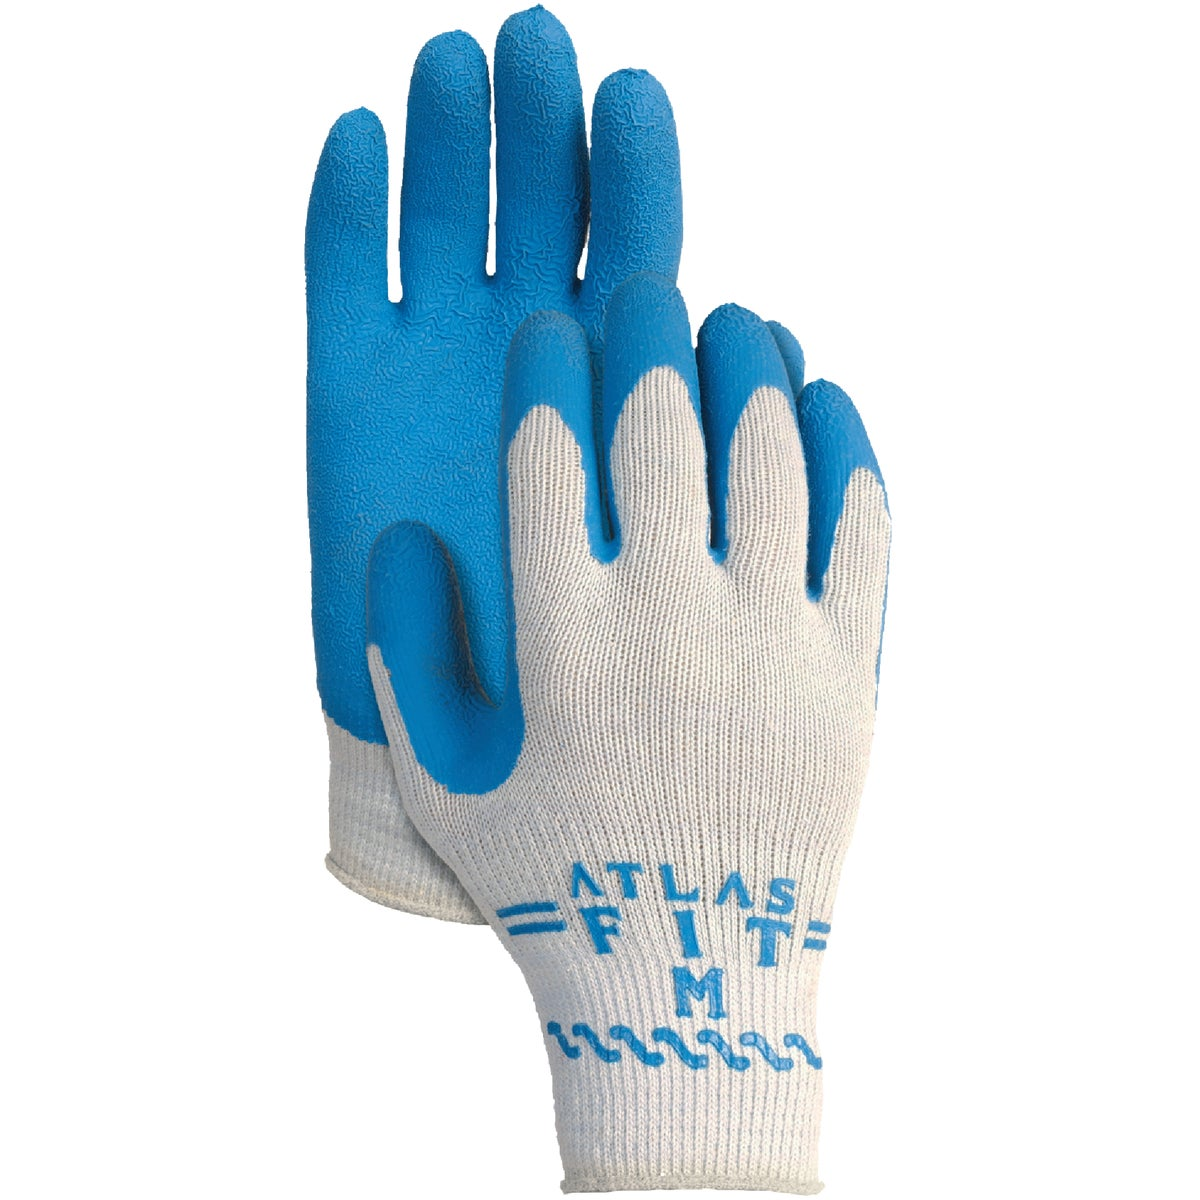 MED PALM DIPPED GLOVE